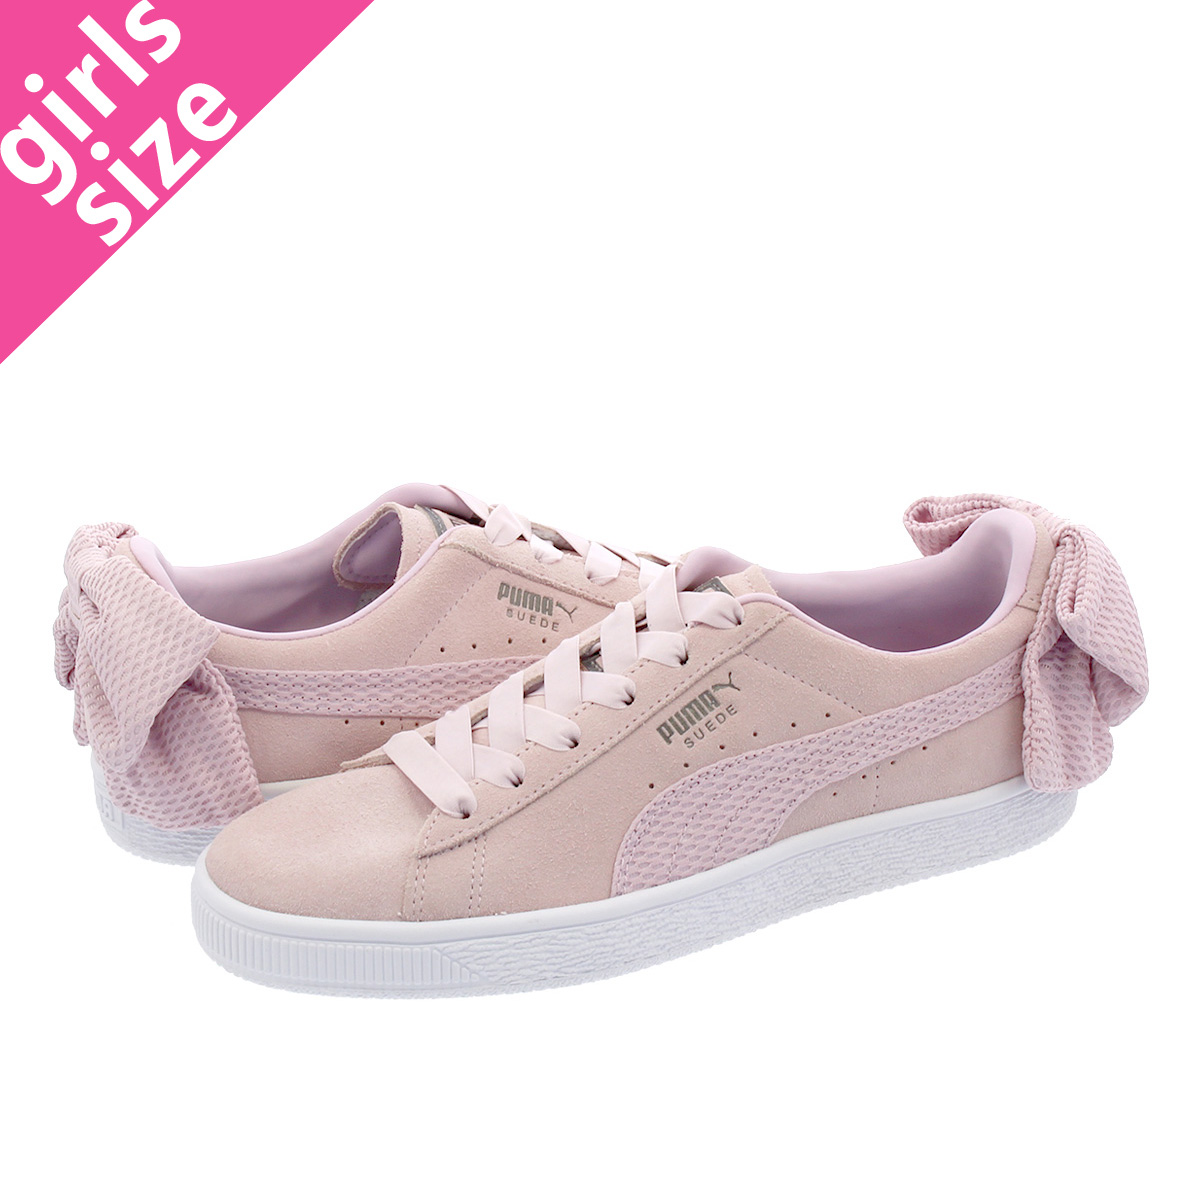 59c64d1a390322 LOWTEX BIG-SMALL SHOP  PUMA SUEDE BOW UPRISING WMNS Puma suede cloth BOW up  rising women WINSOME ORCHID PUMA WHITE 367